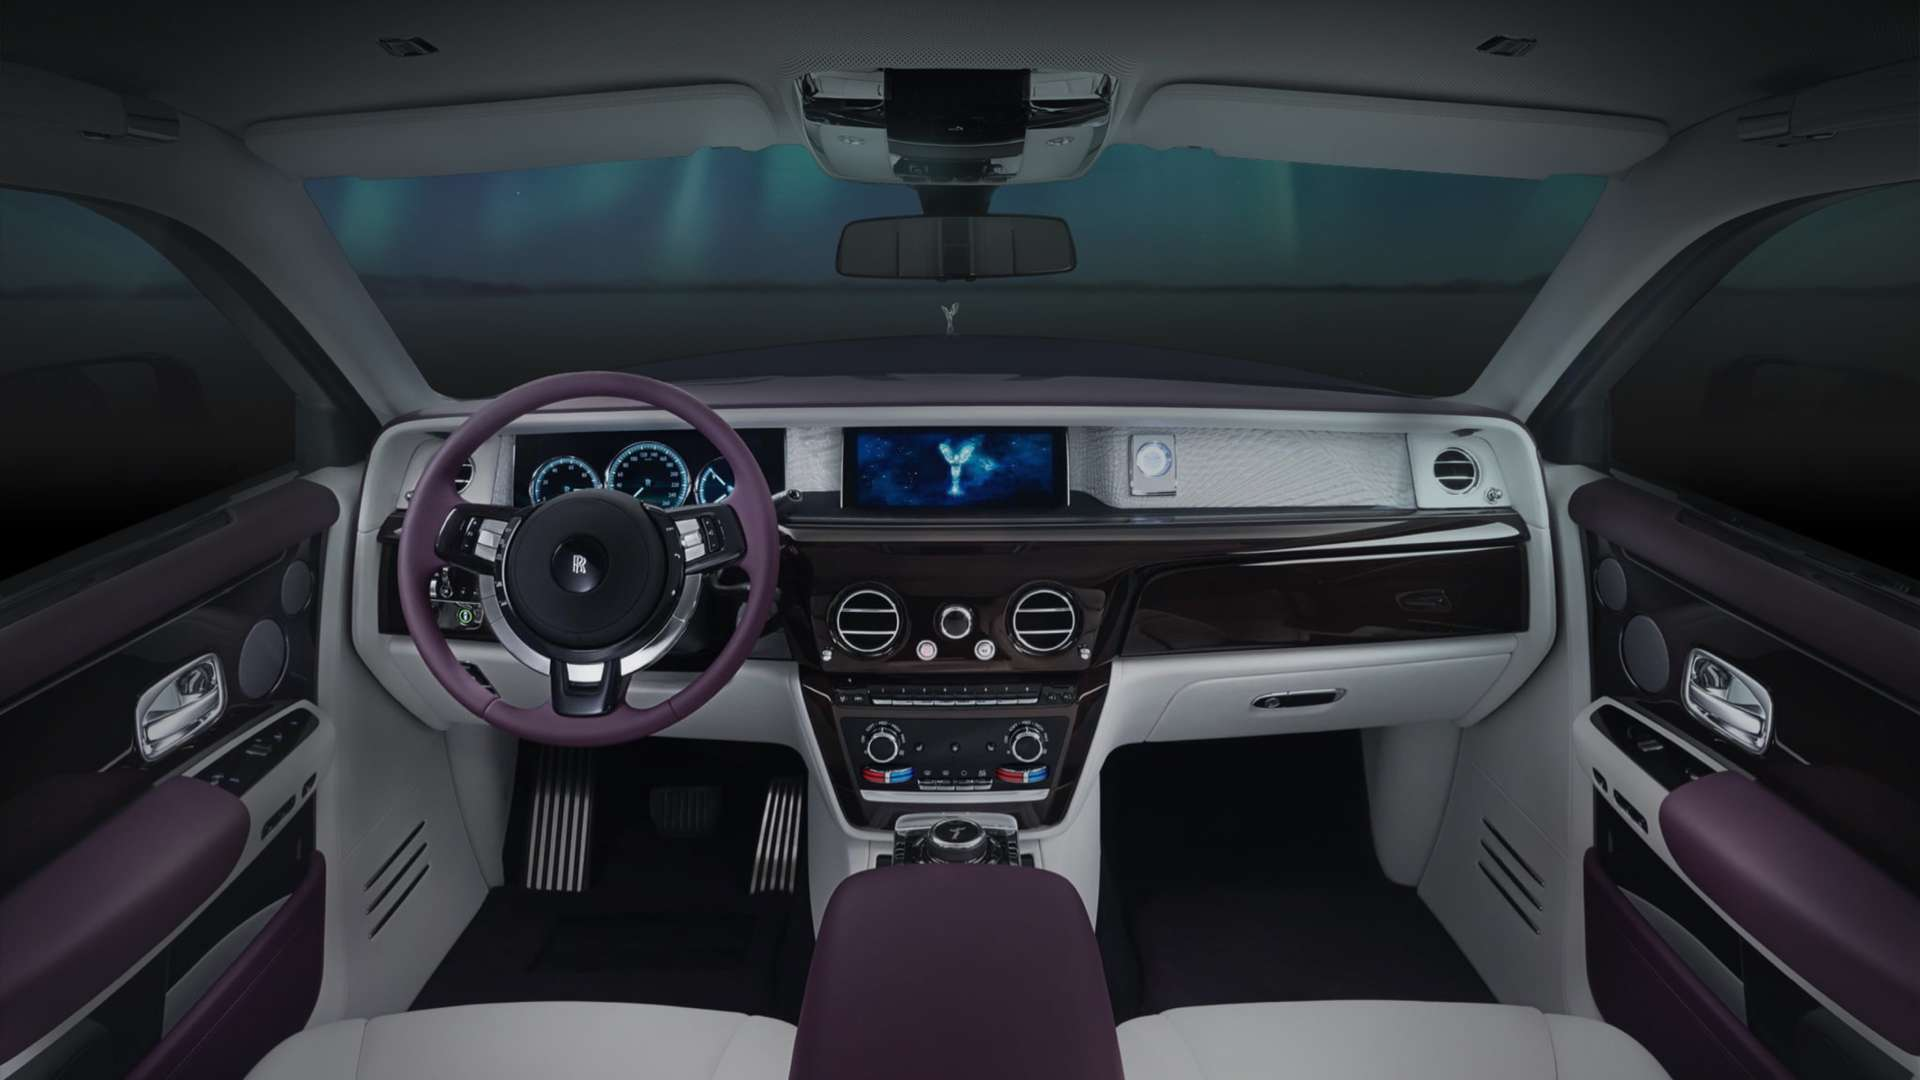 Interior and steering wheel of Rolls-Royce Phantom Extended Wheelbase